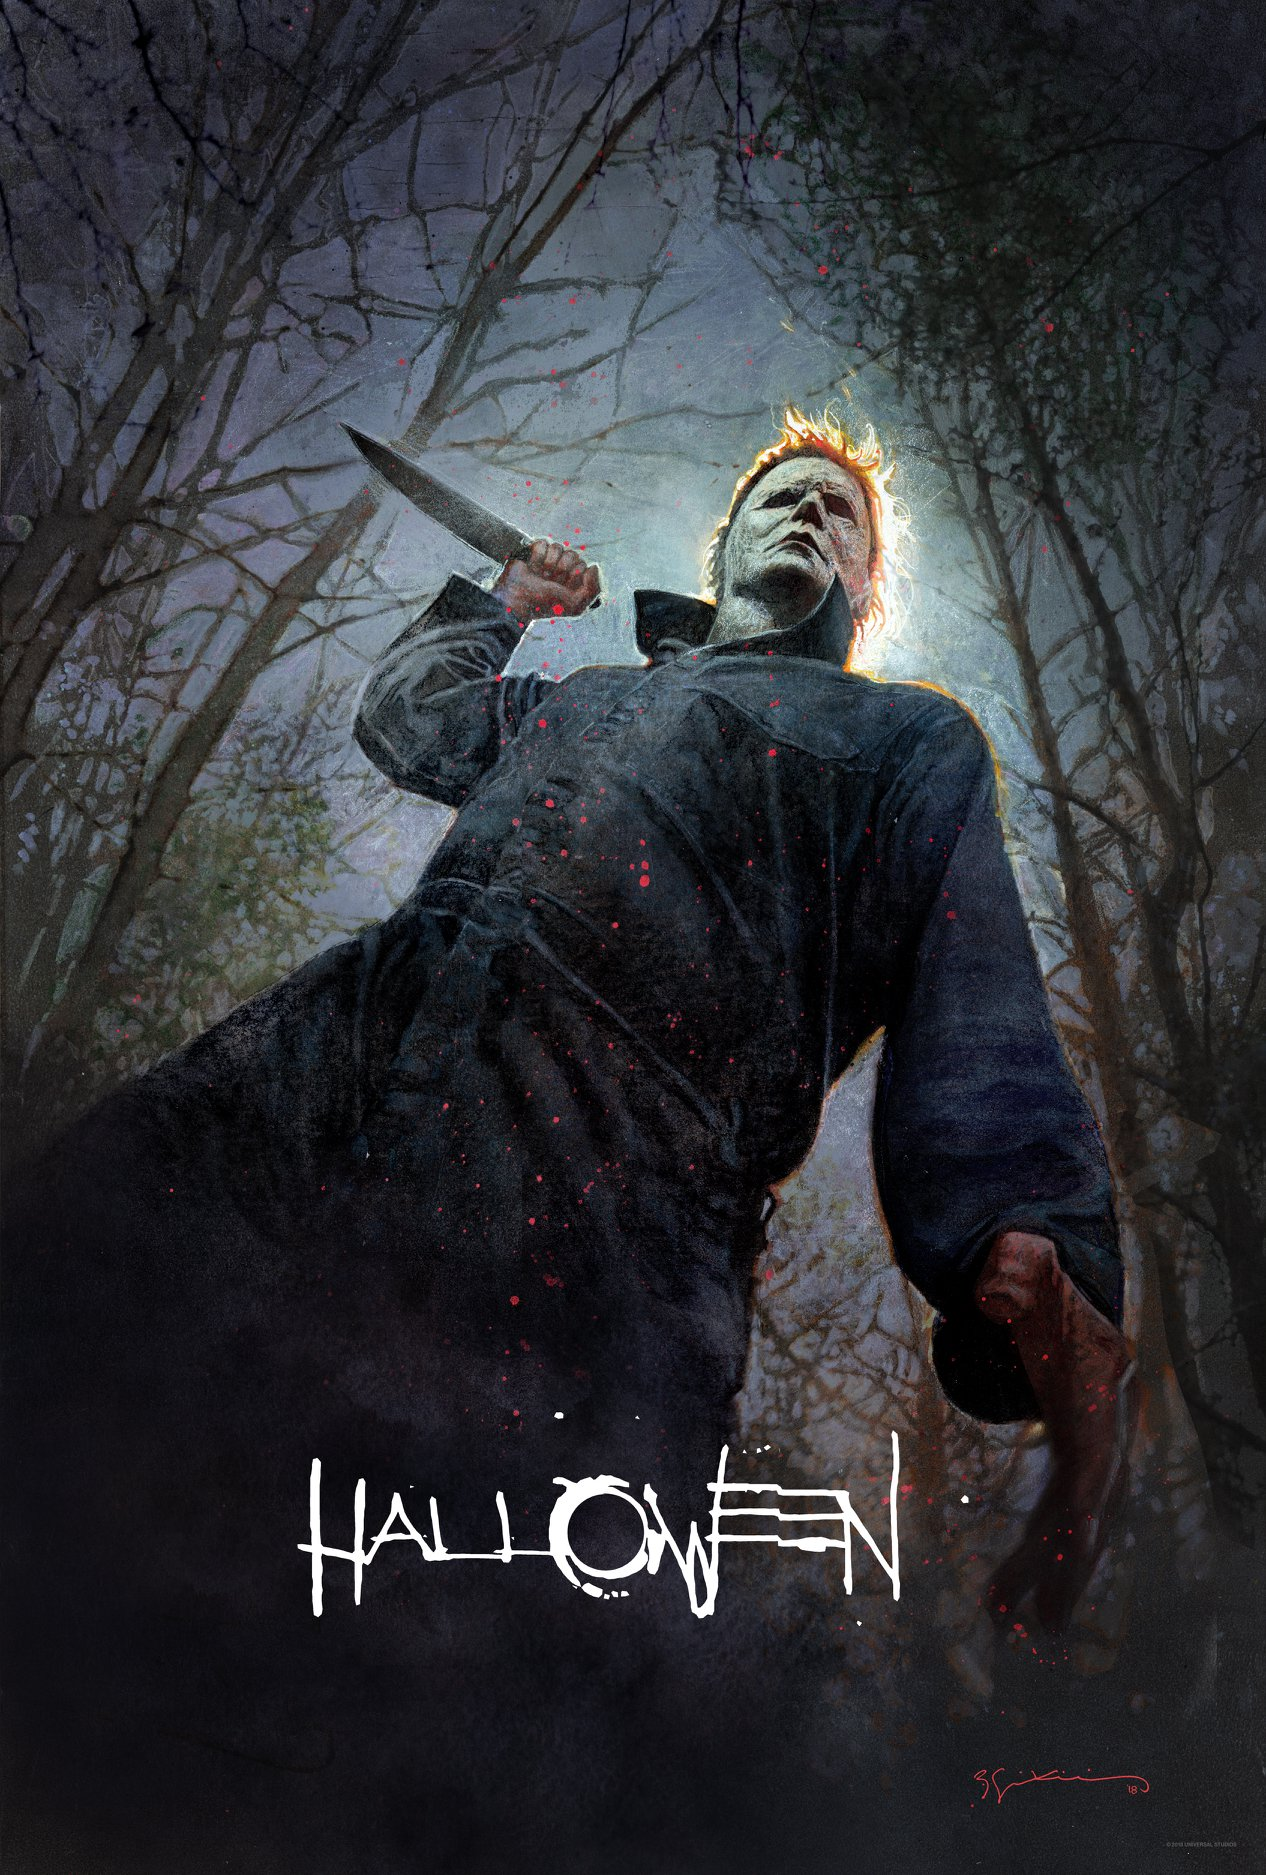 Comic-Con Halloween Poster Brings The Shape Home ...